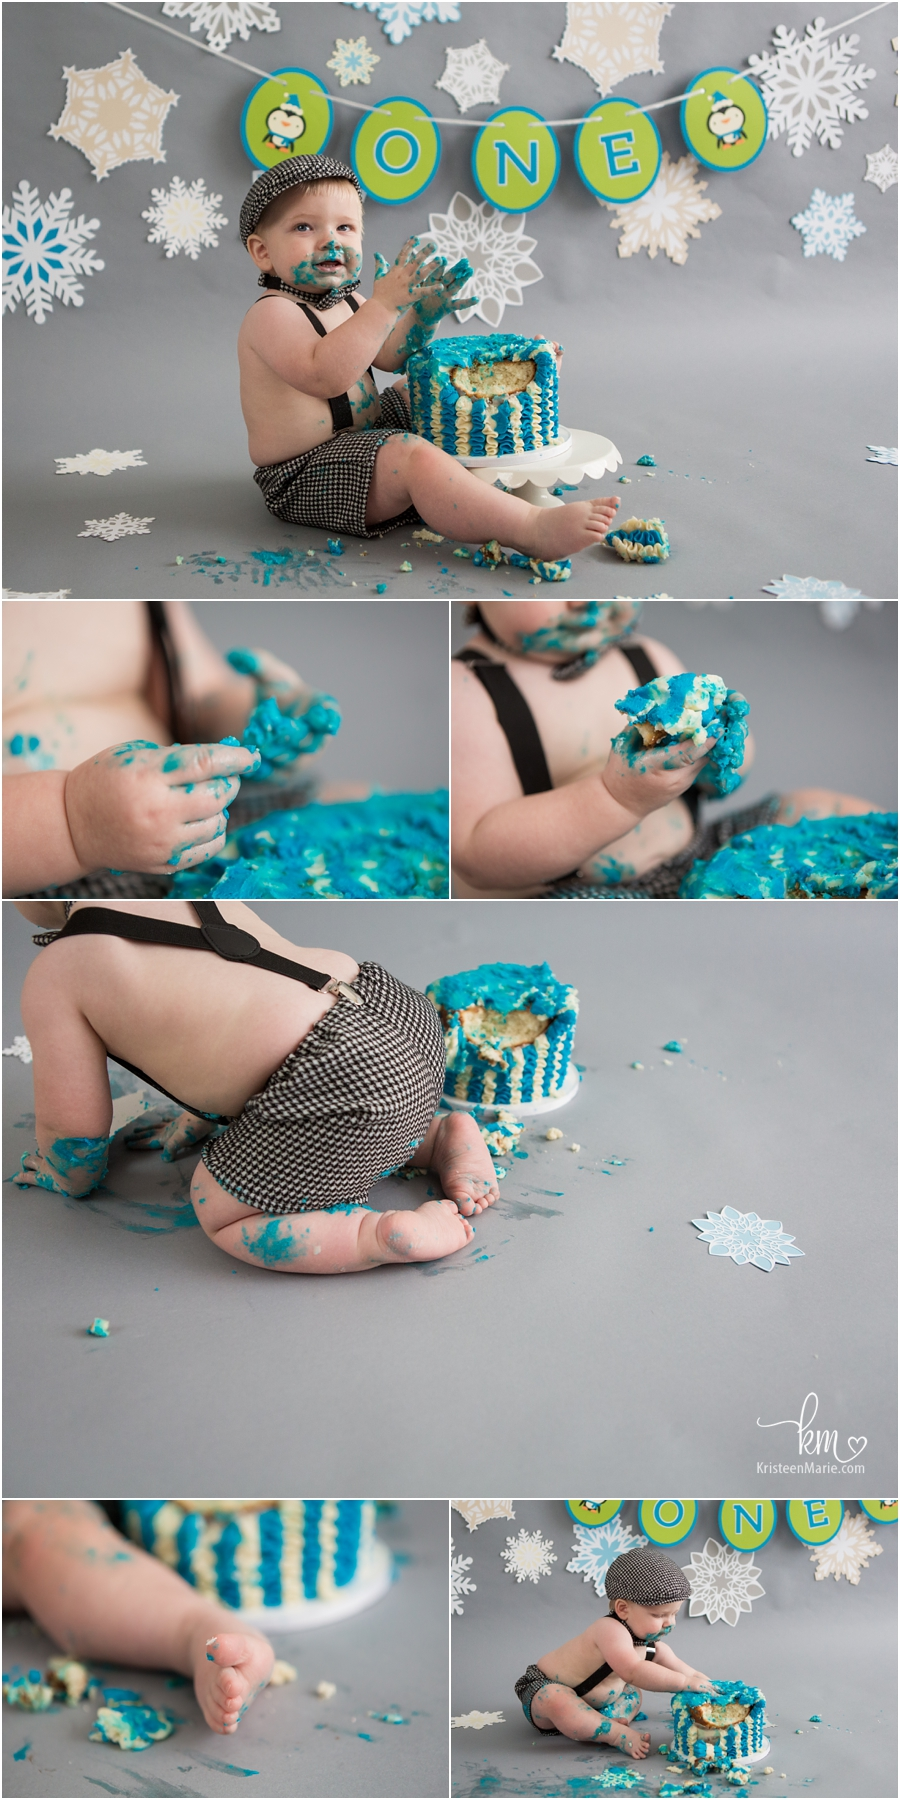 adorable mess with birthday boy - celebrating 1st birthday with Winter ONEderland themed cake smash session